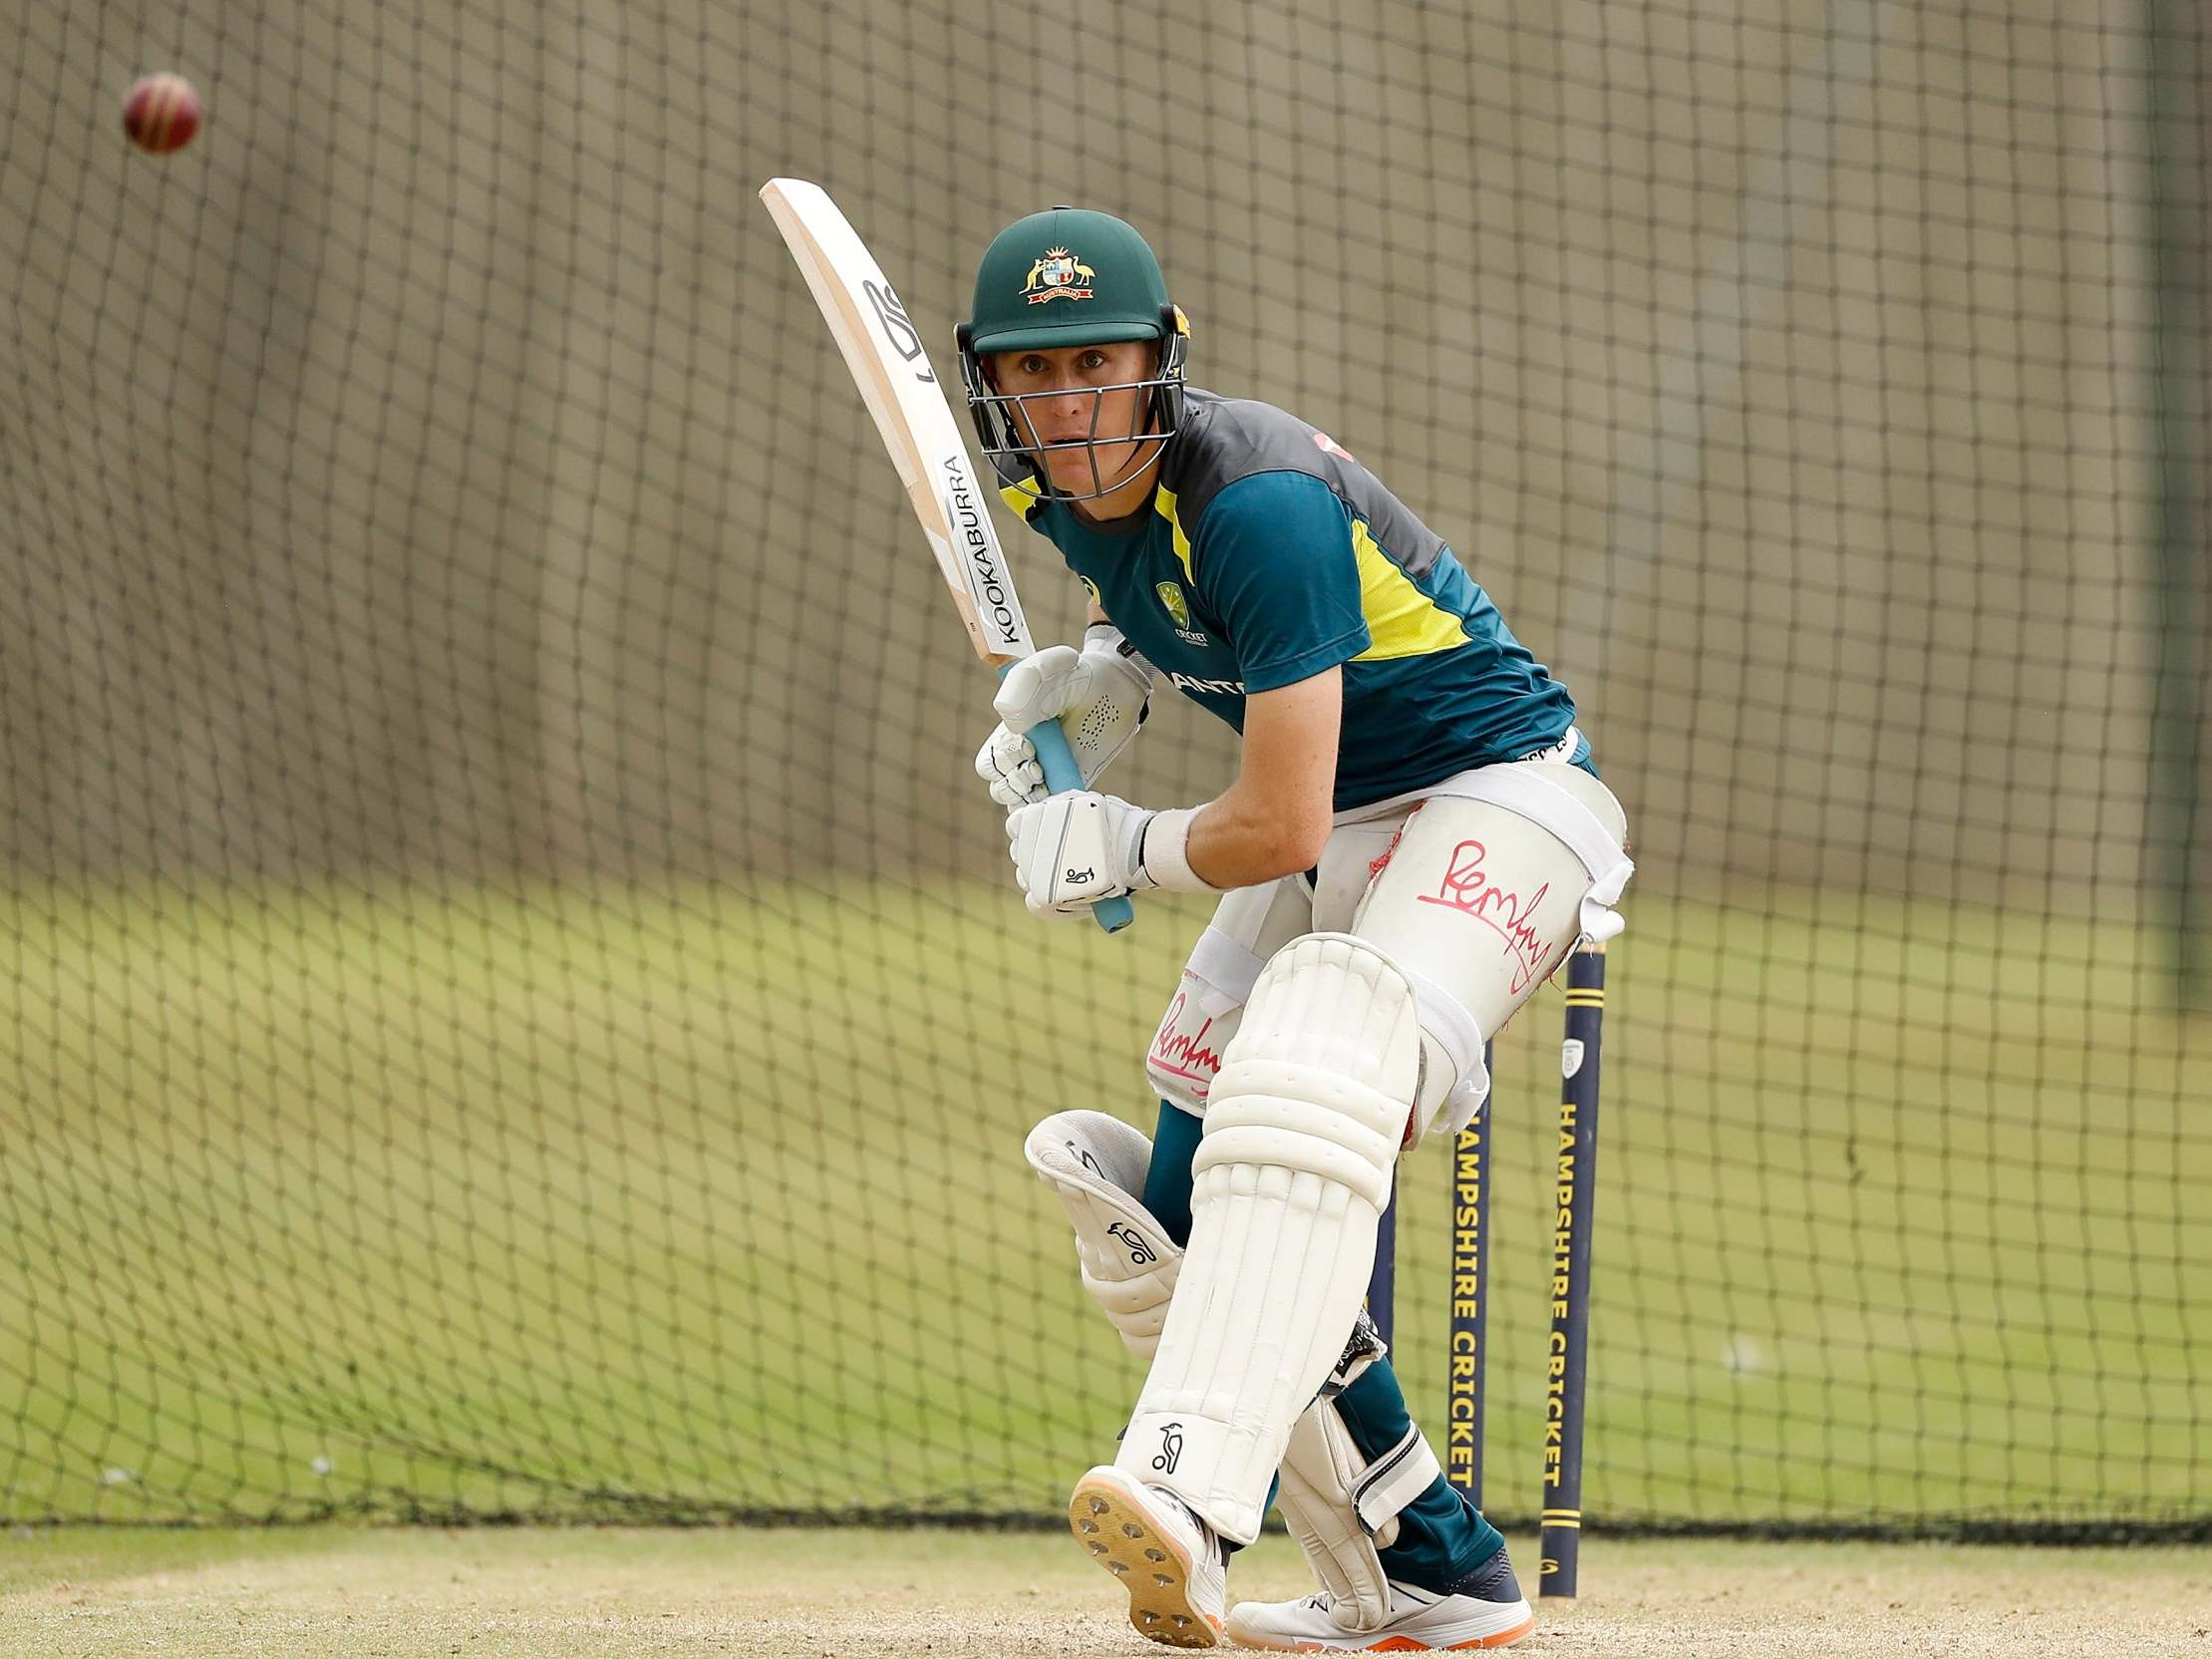 Marnus Labuschagne Australian Outsider Looks To Christianity To Provide Perspective On Cricket As Ashes Berth Beckons The Independent The Independent